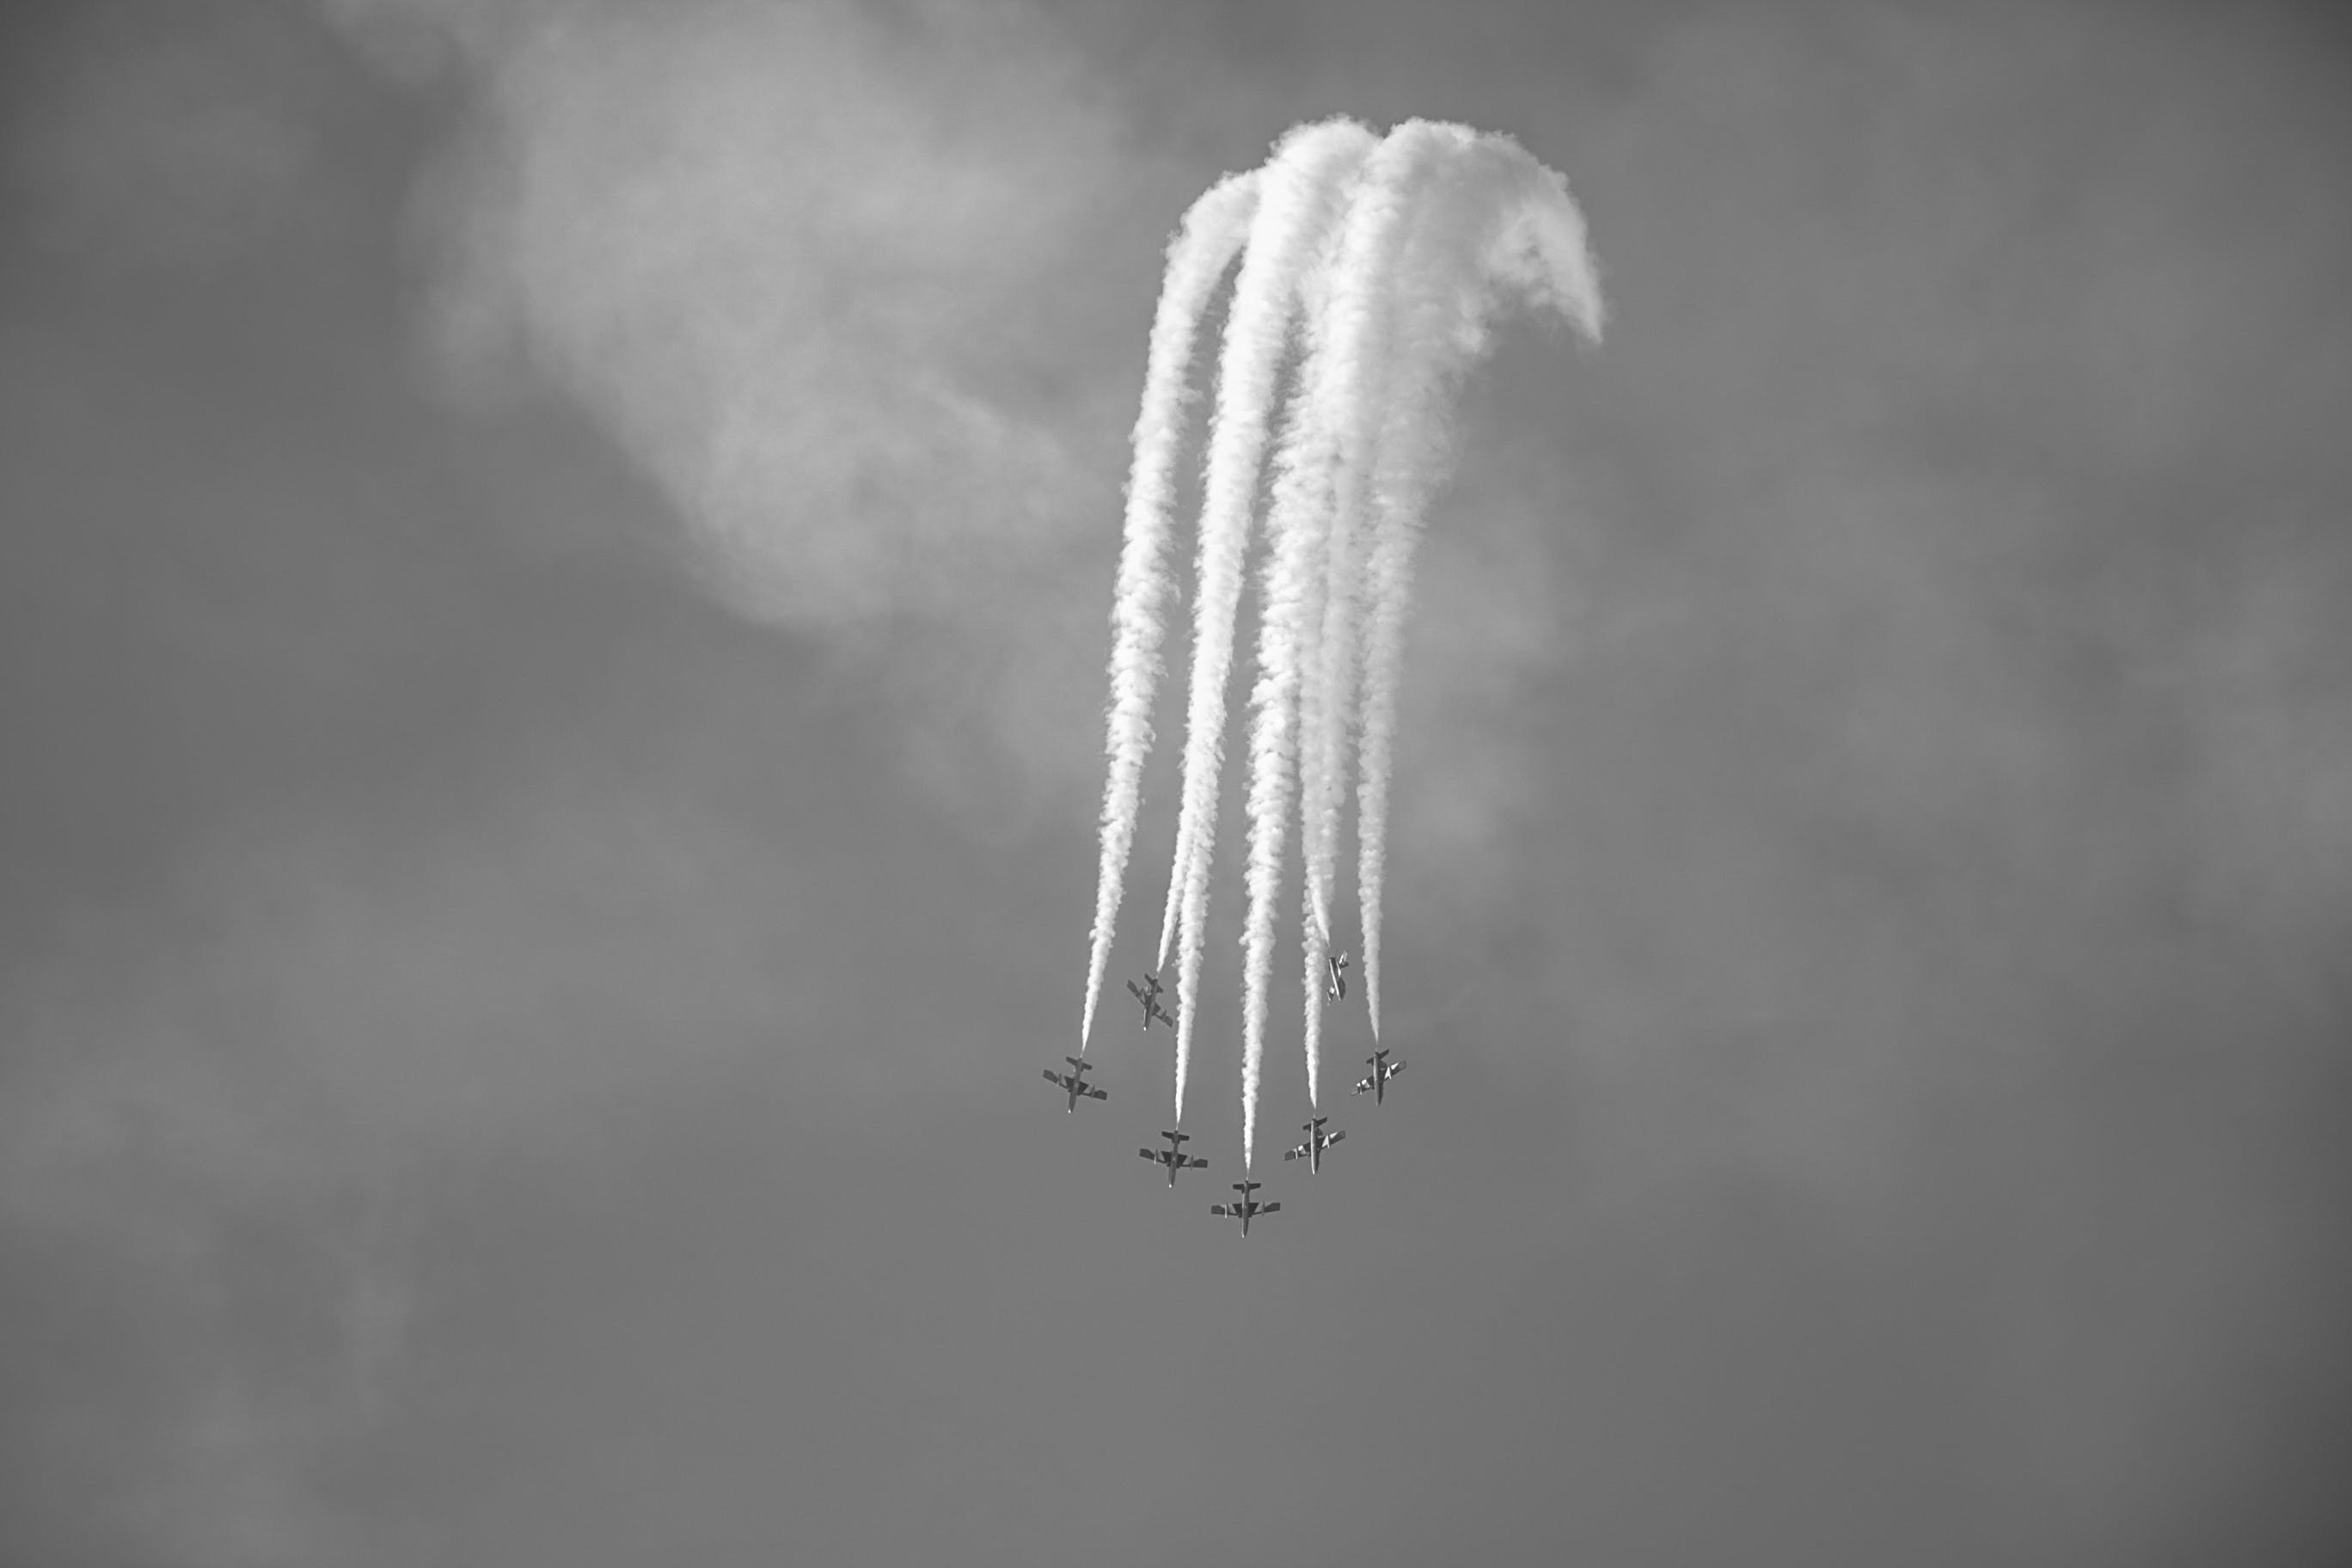 Photography Grayscale of Performing Jet